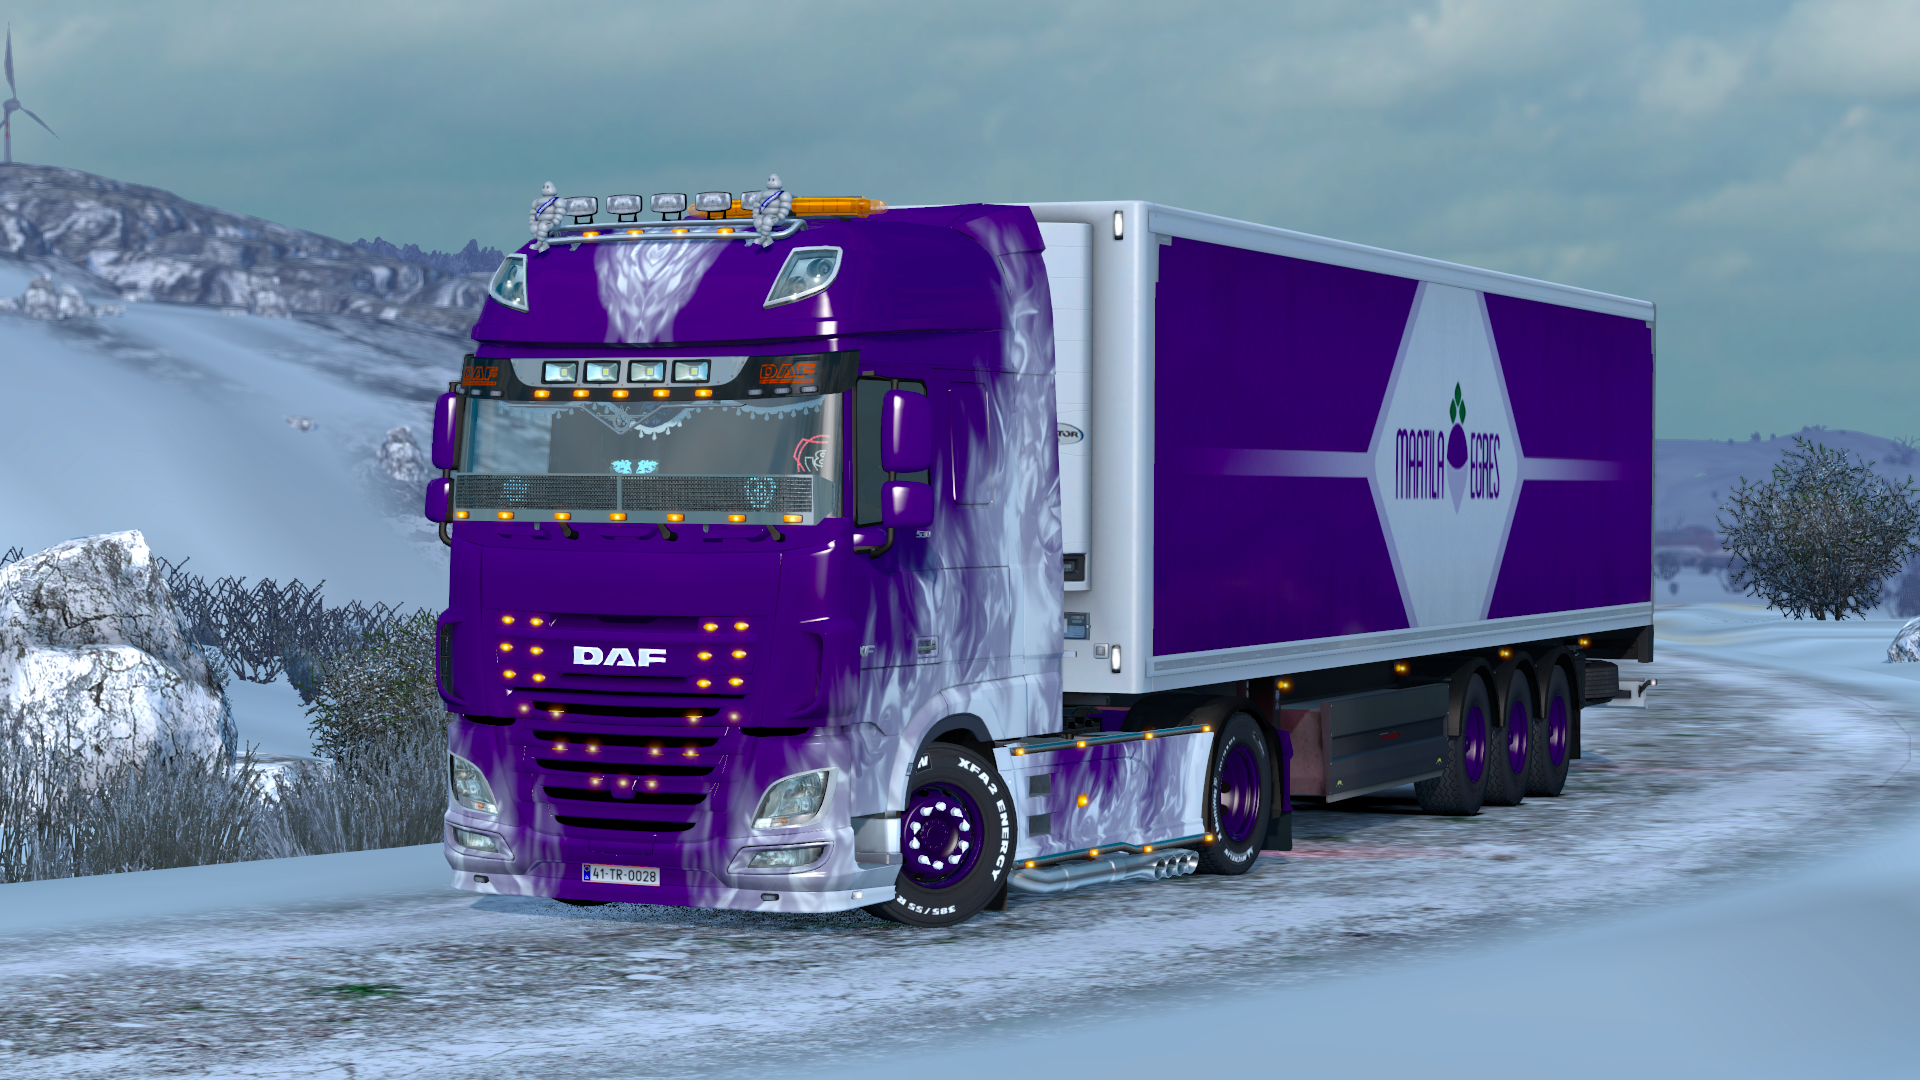 ets2_20190103_210859_00.png